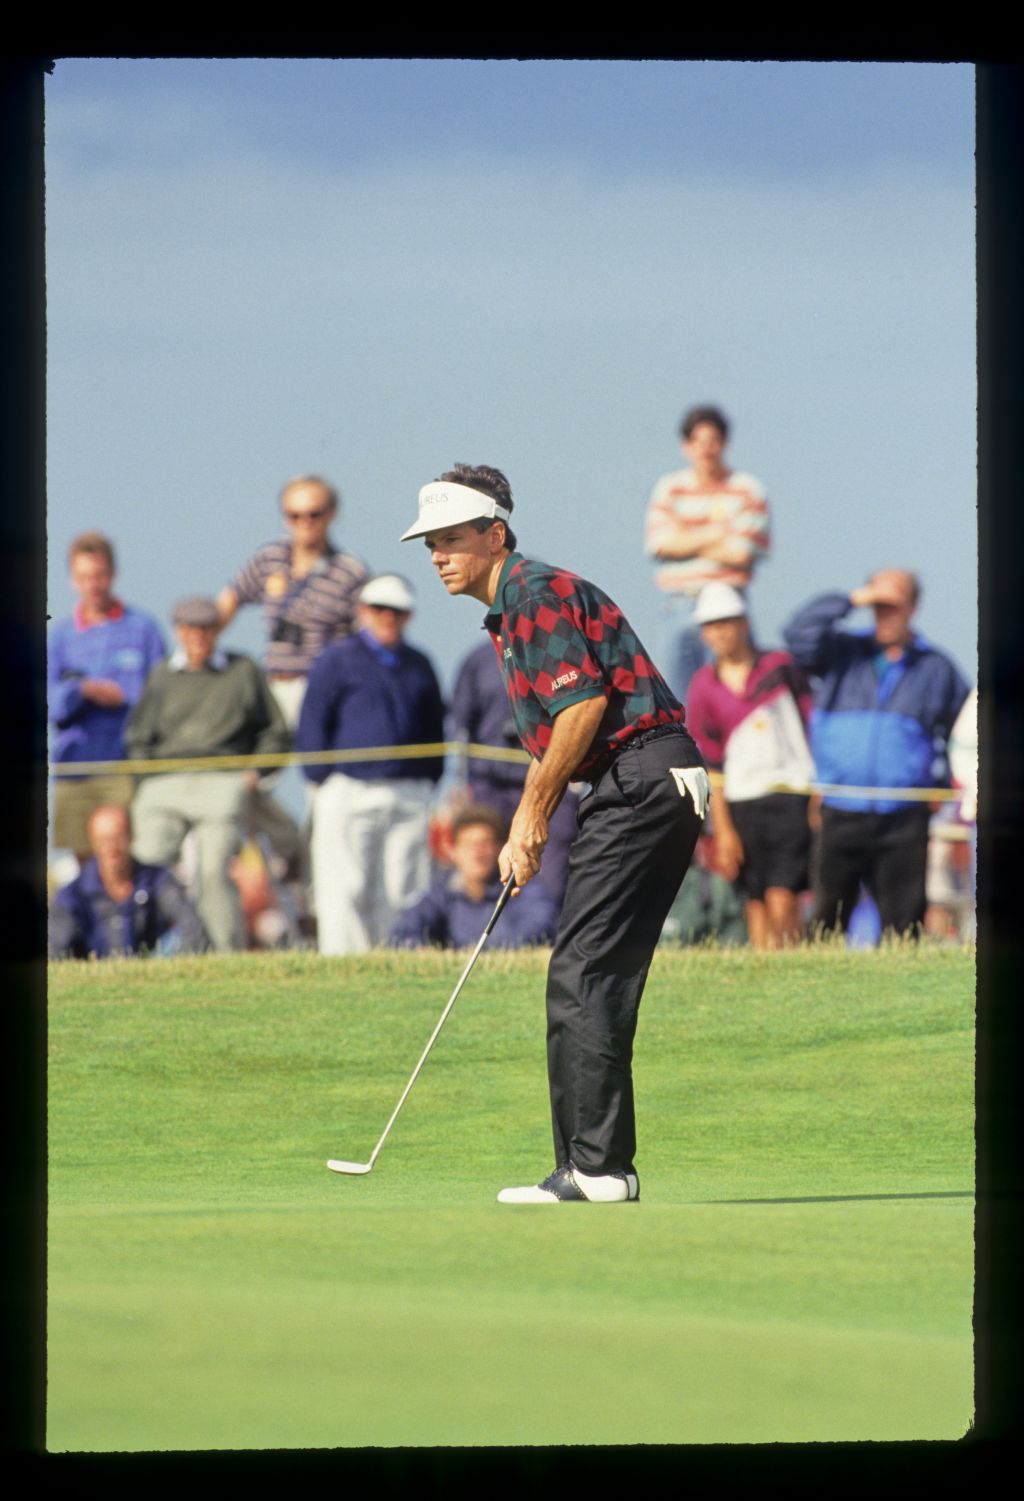 Larry Mize putting during the 1993 Open Championship